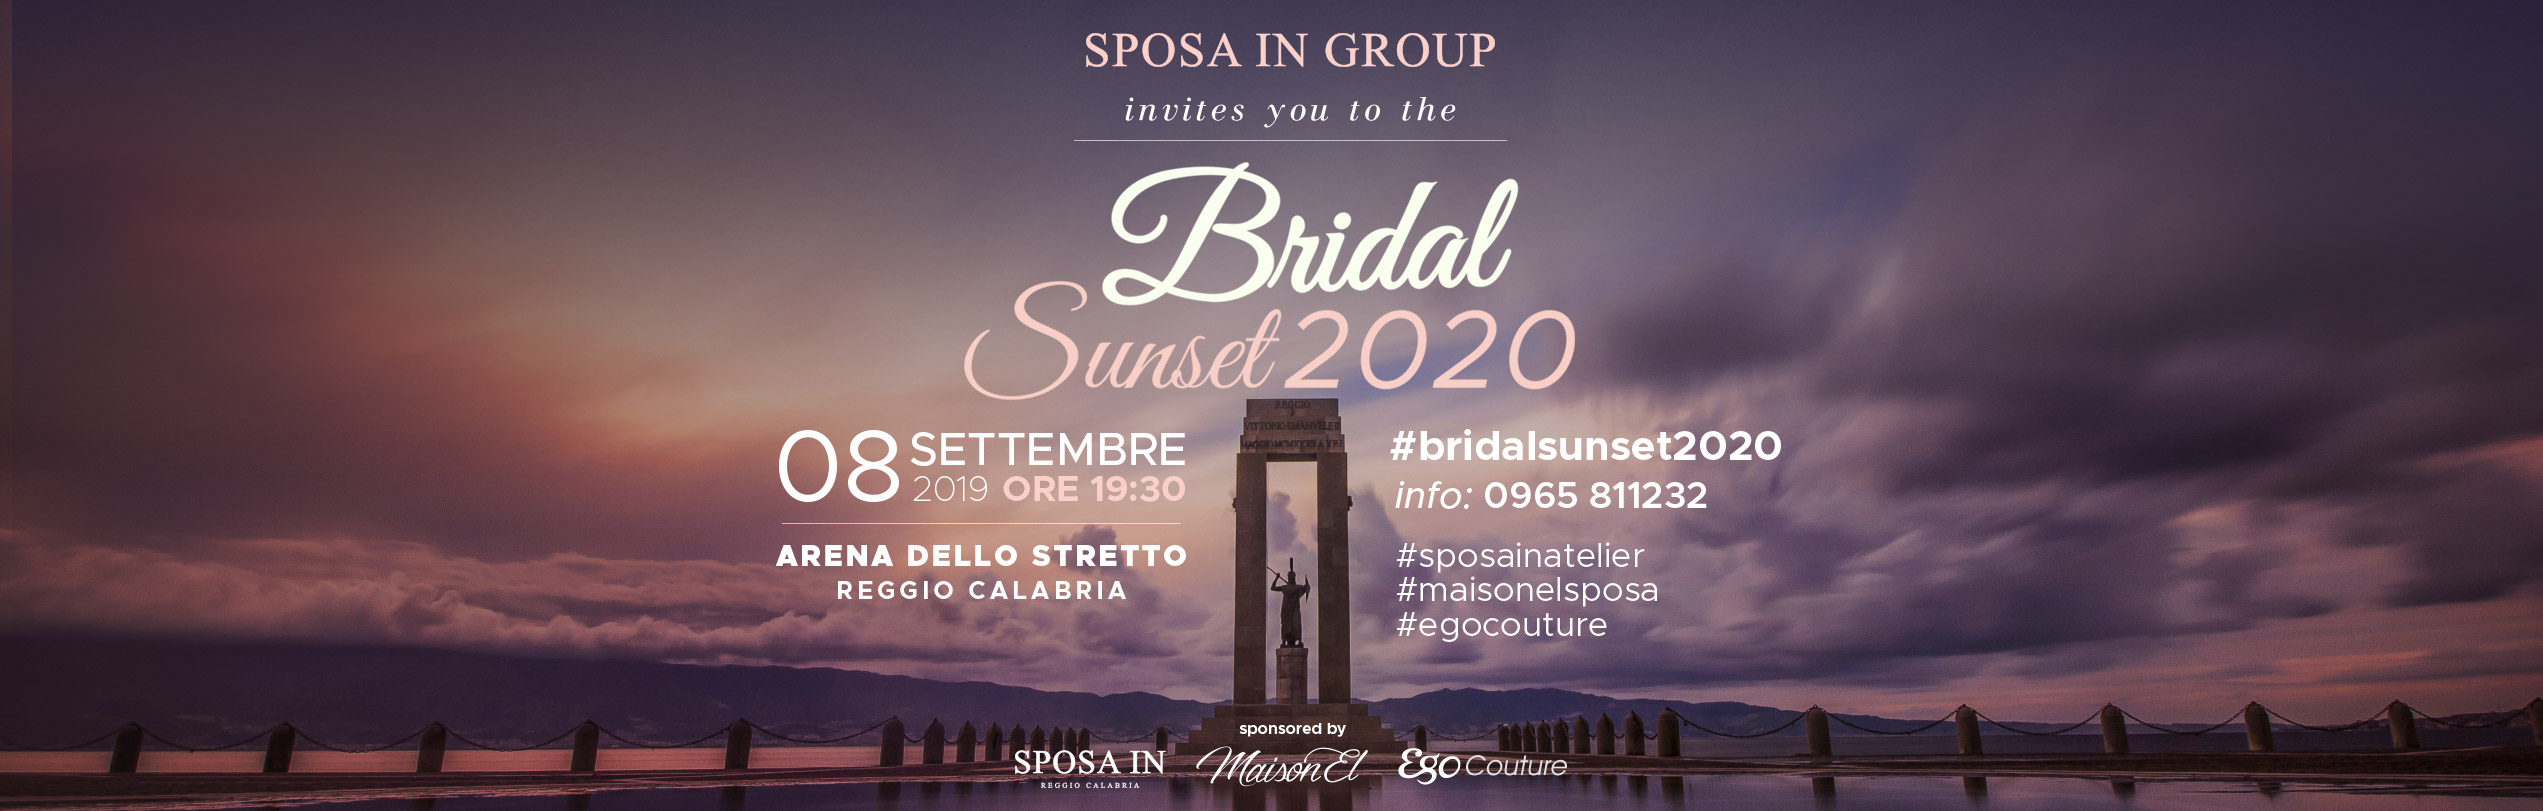 Bridal sunset 2020